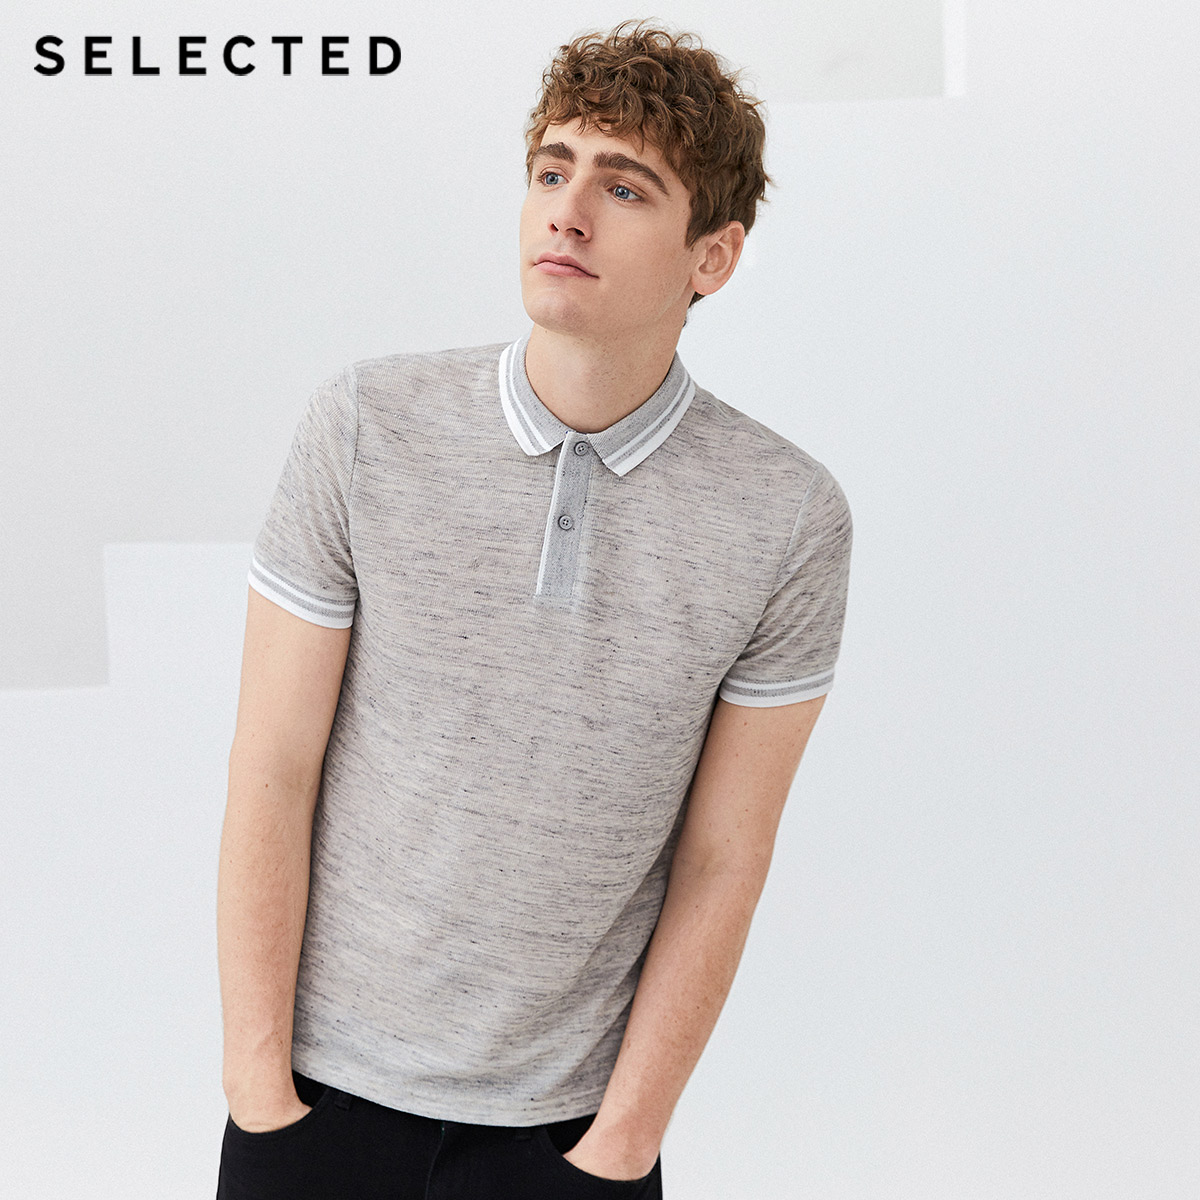 SELECTED Men's Summer Linen-blending Striped Short-sleeved Poloshirt S|419206539